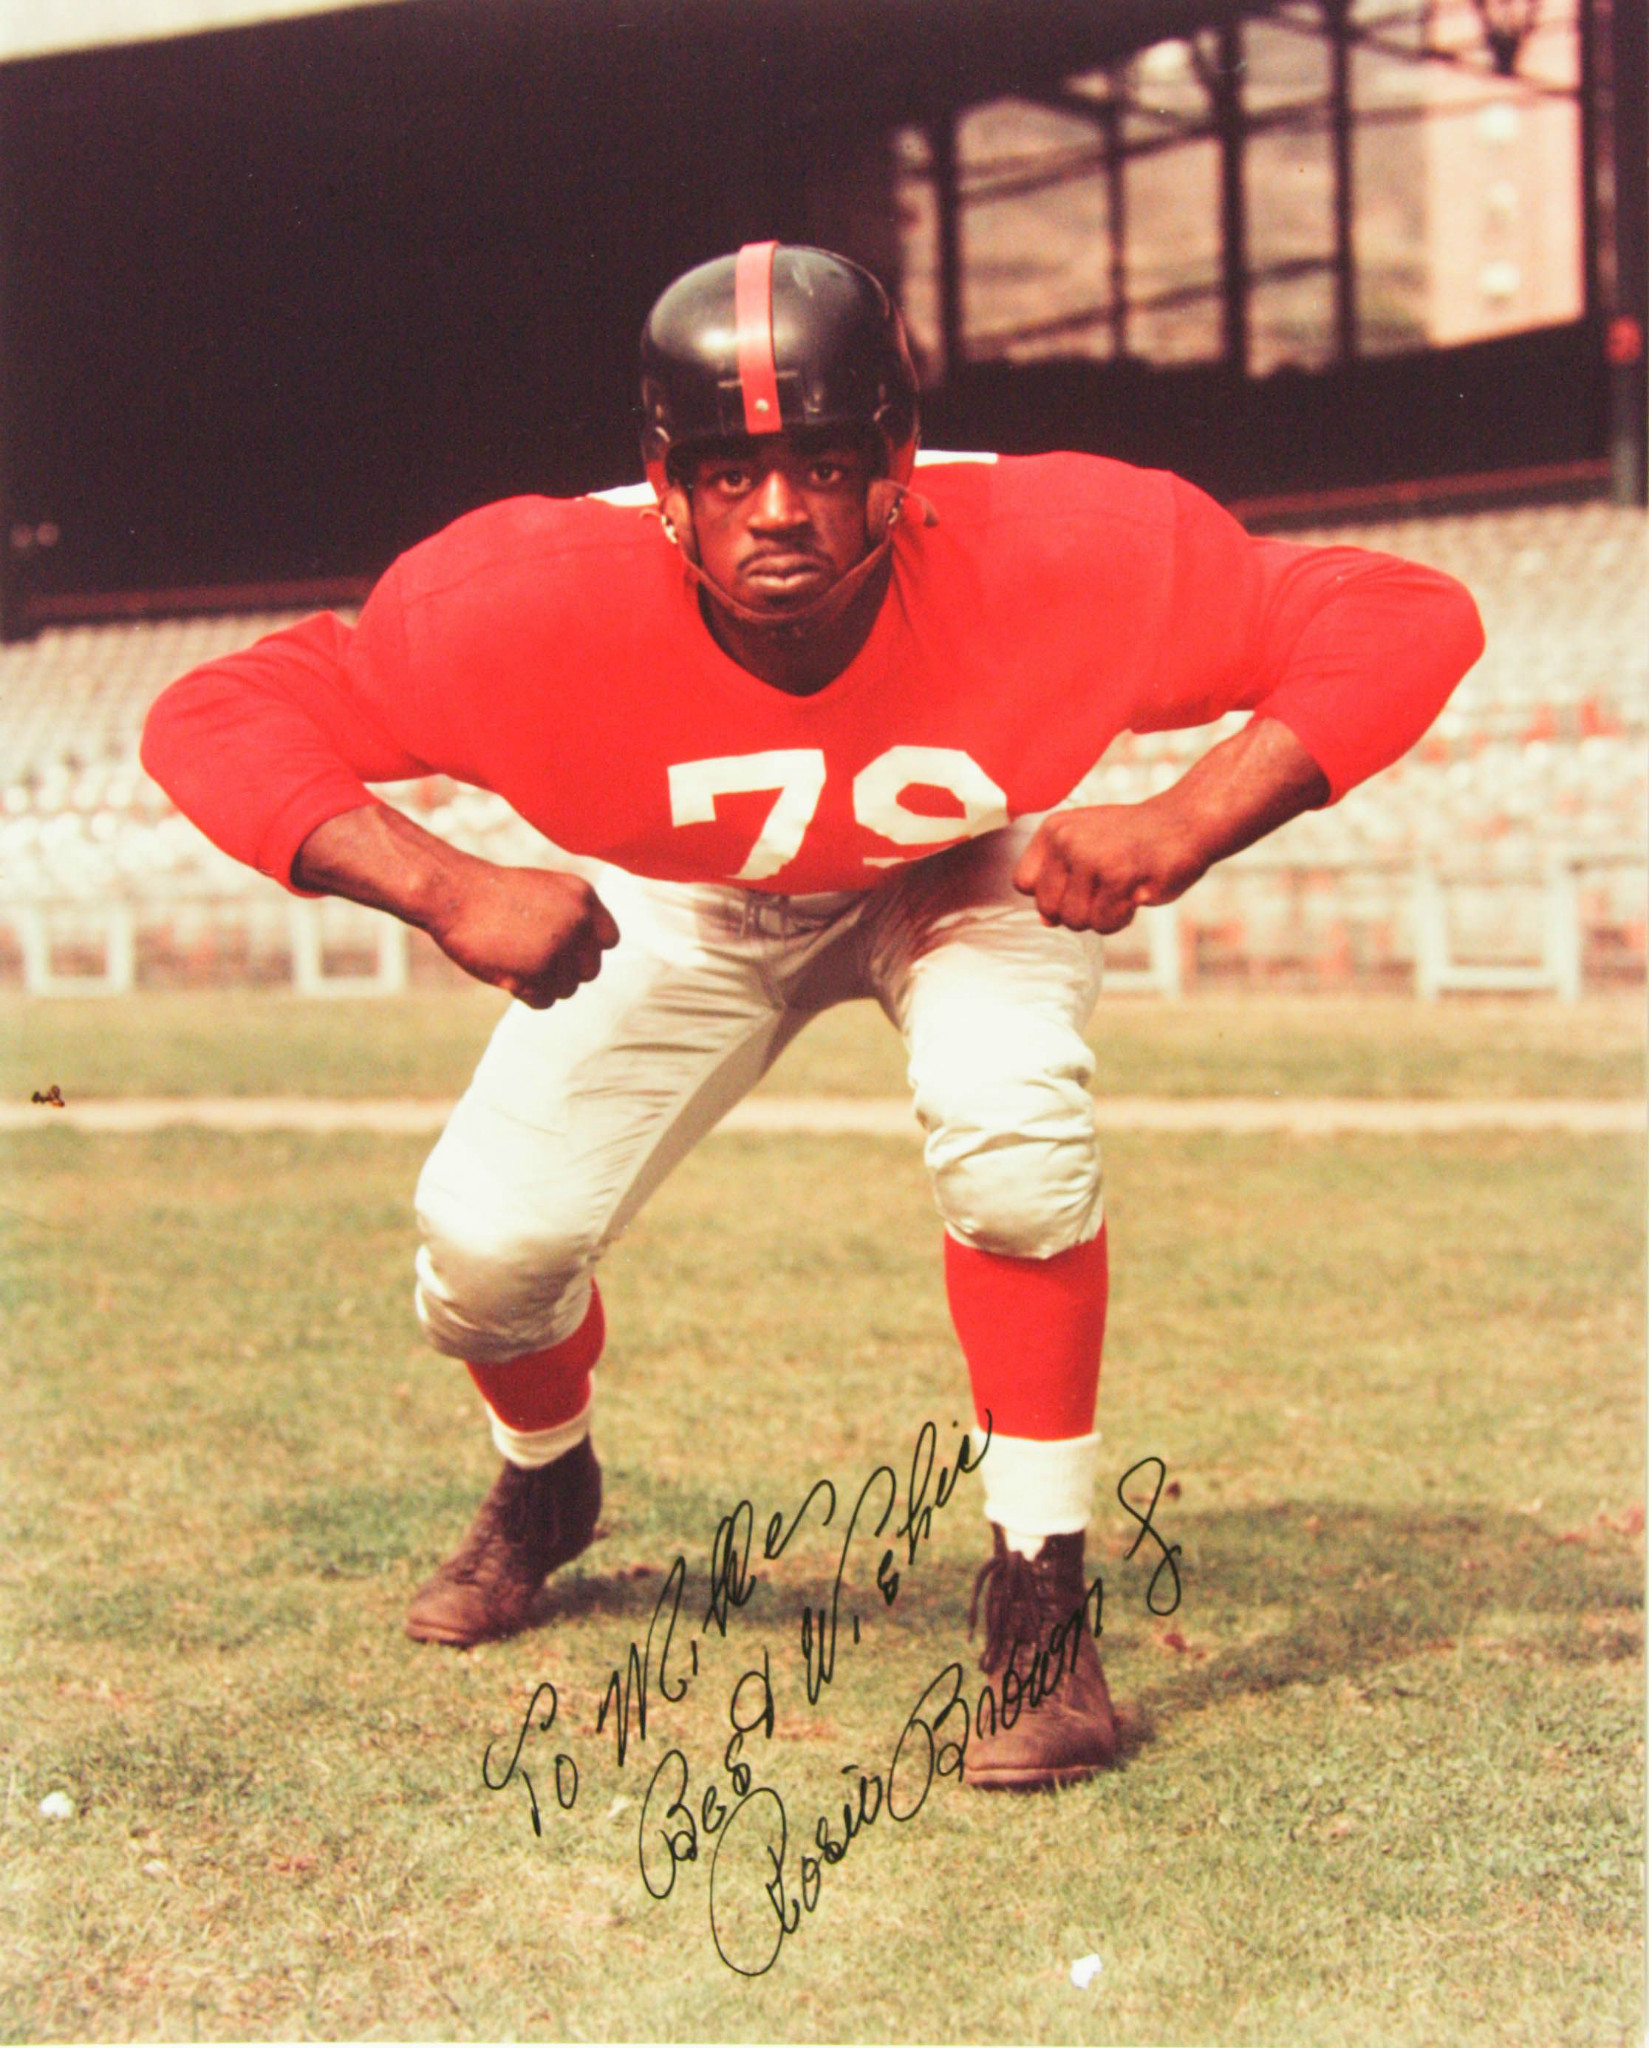 Rosey Brown, New York Giants (1952)